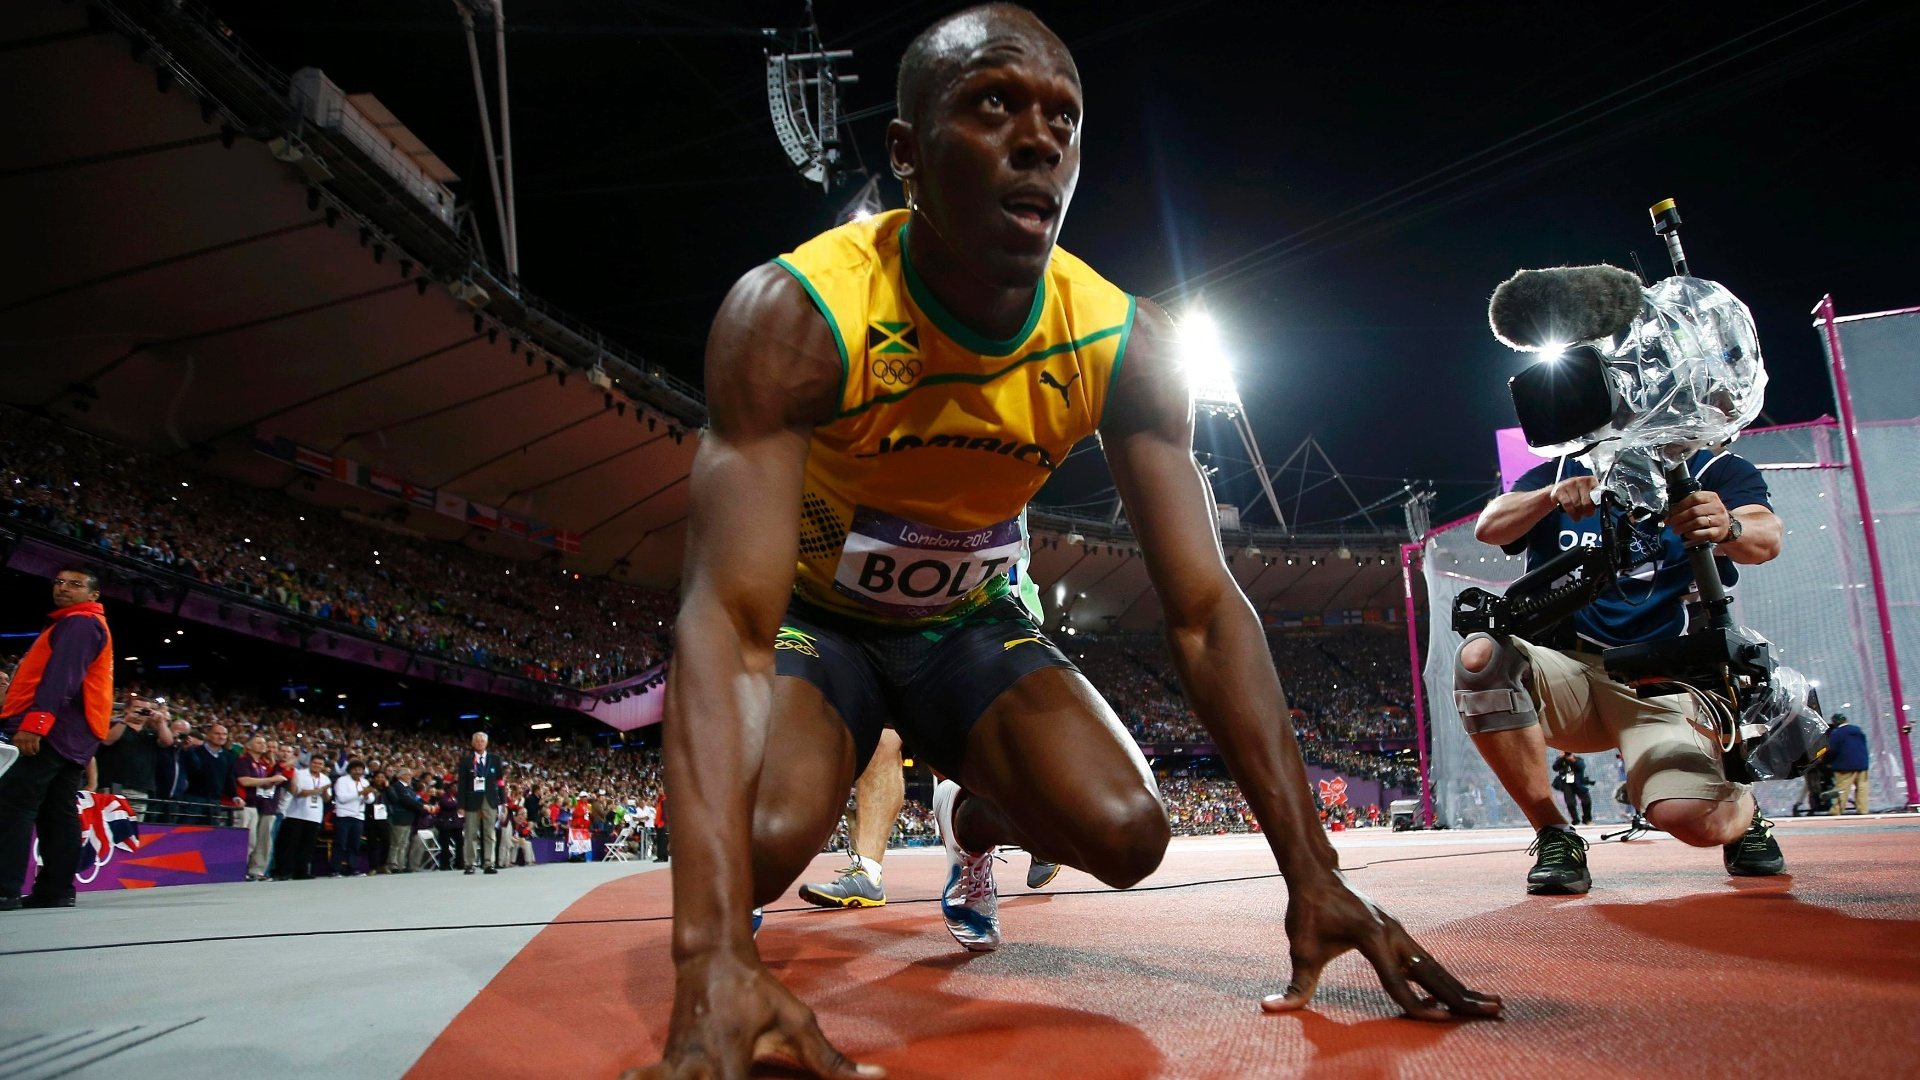 Usain Bolt prepara-se para disputar final olmpica dos 100 m rasos